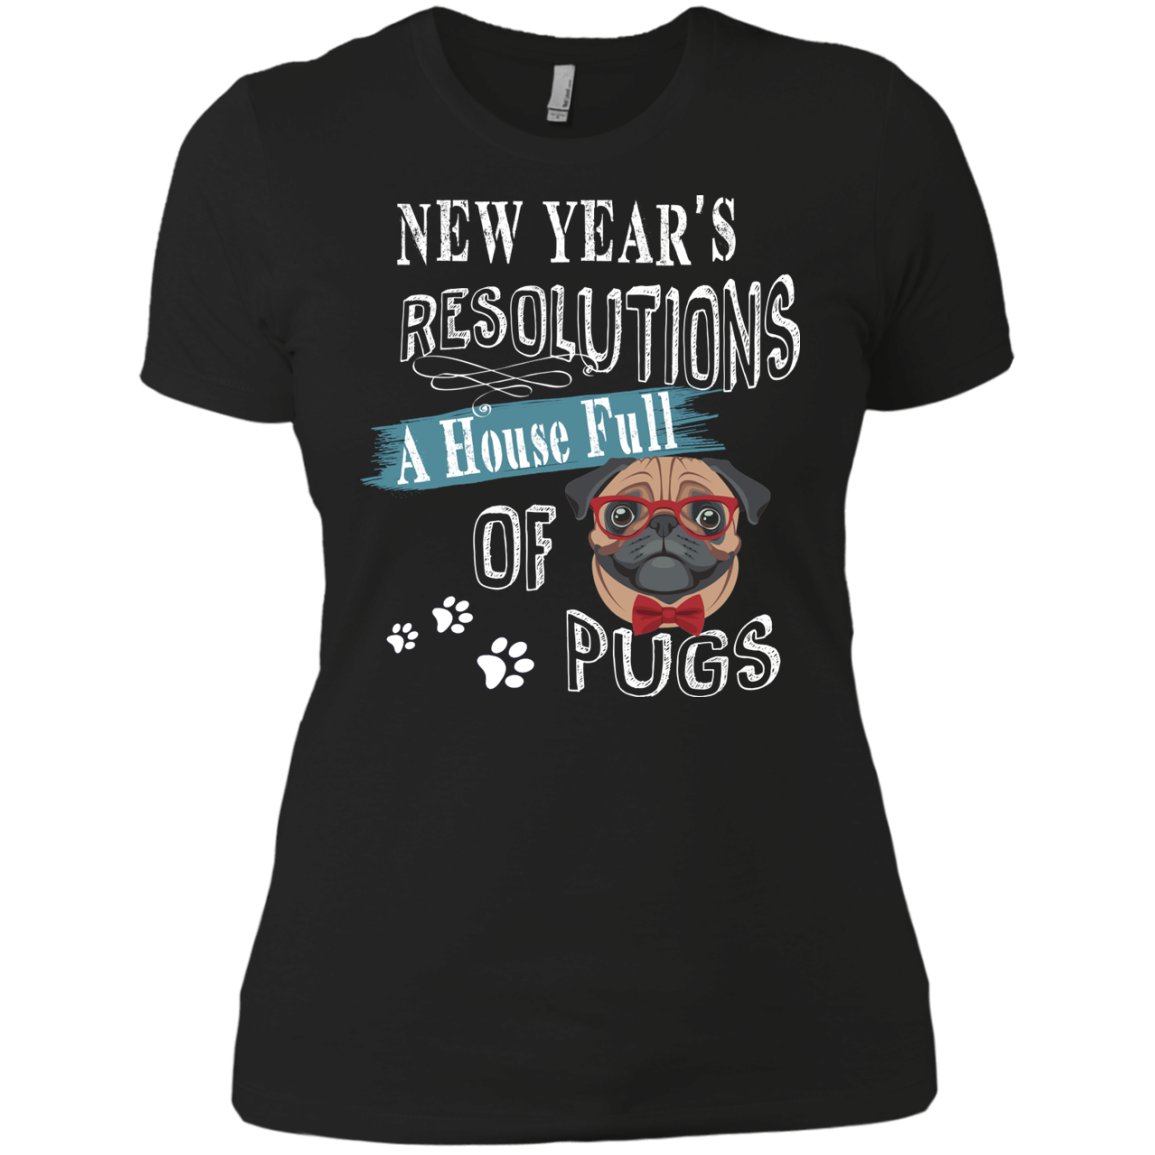 New Year Resolutions A House Full Of Pugs T shirts Hoodies For Pug Lovers